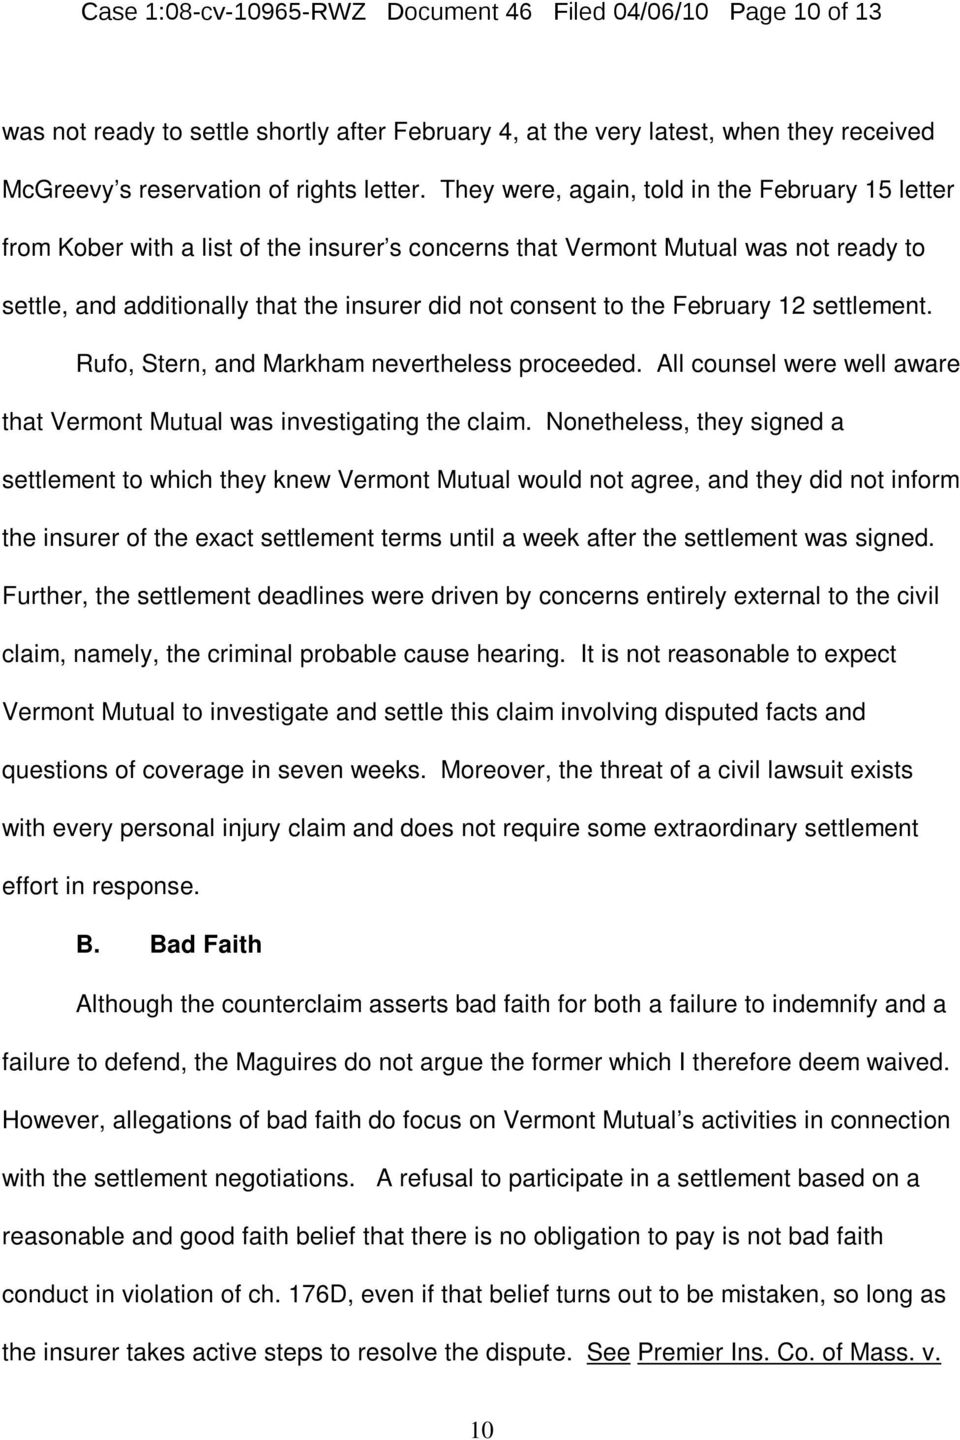 February 12 settlement. Rufo, Stern, and Markham nevertheless proceeded. All counsel were well aware that Vermont Mutual was investigating the claim.